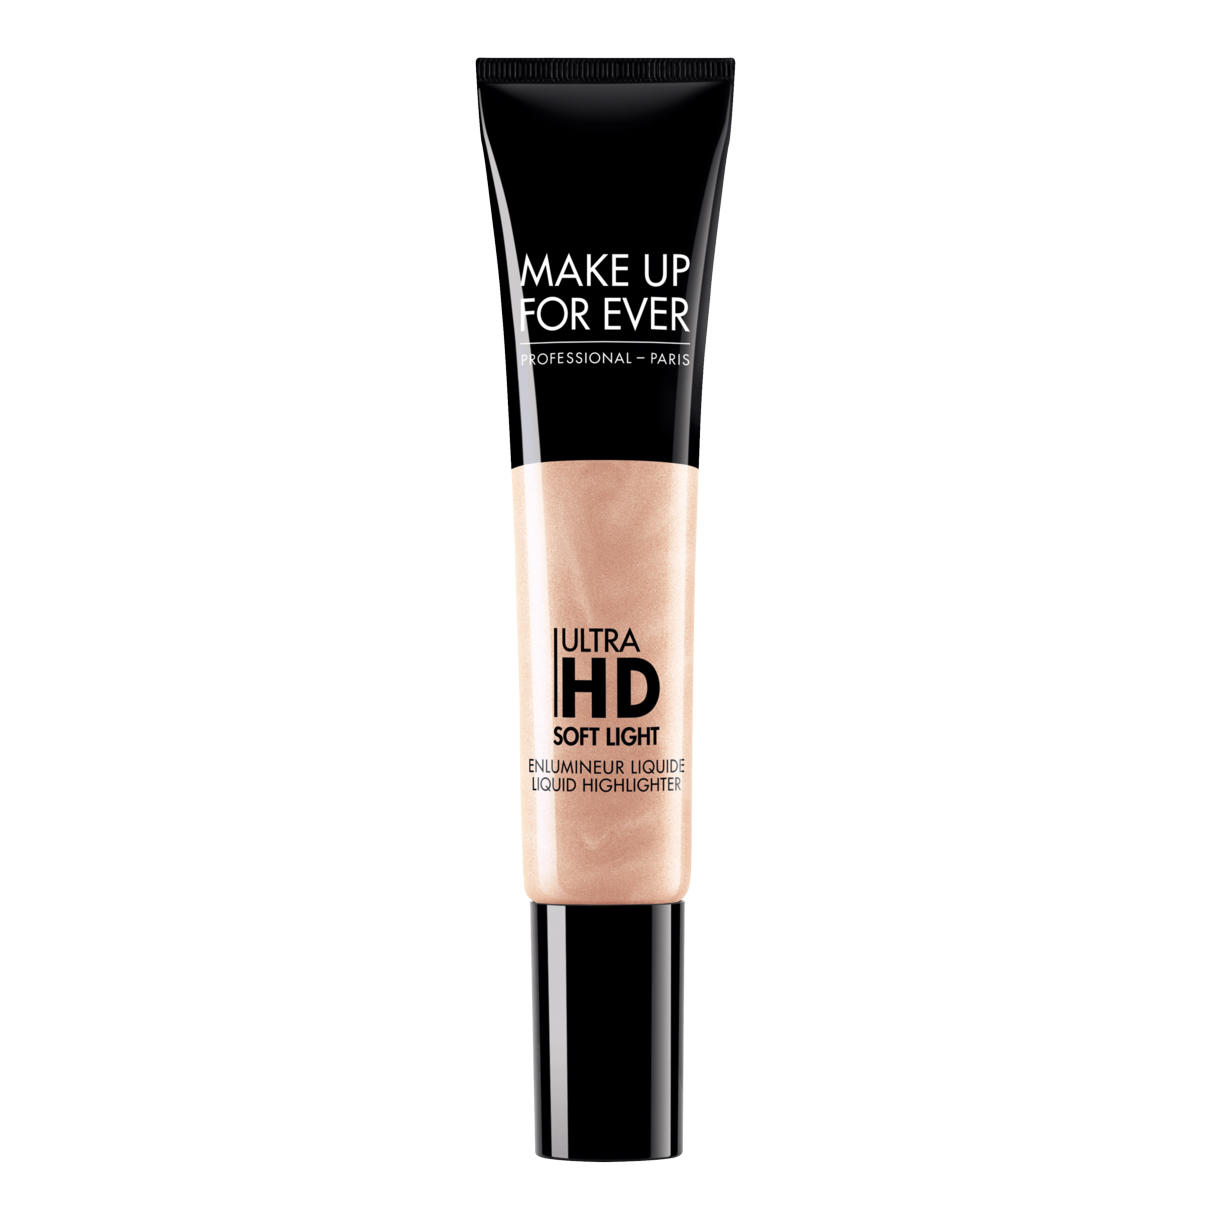 Makeup Forever Soft Light Liquid Highlighter Pink Copper 40